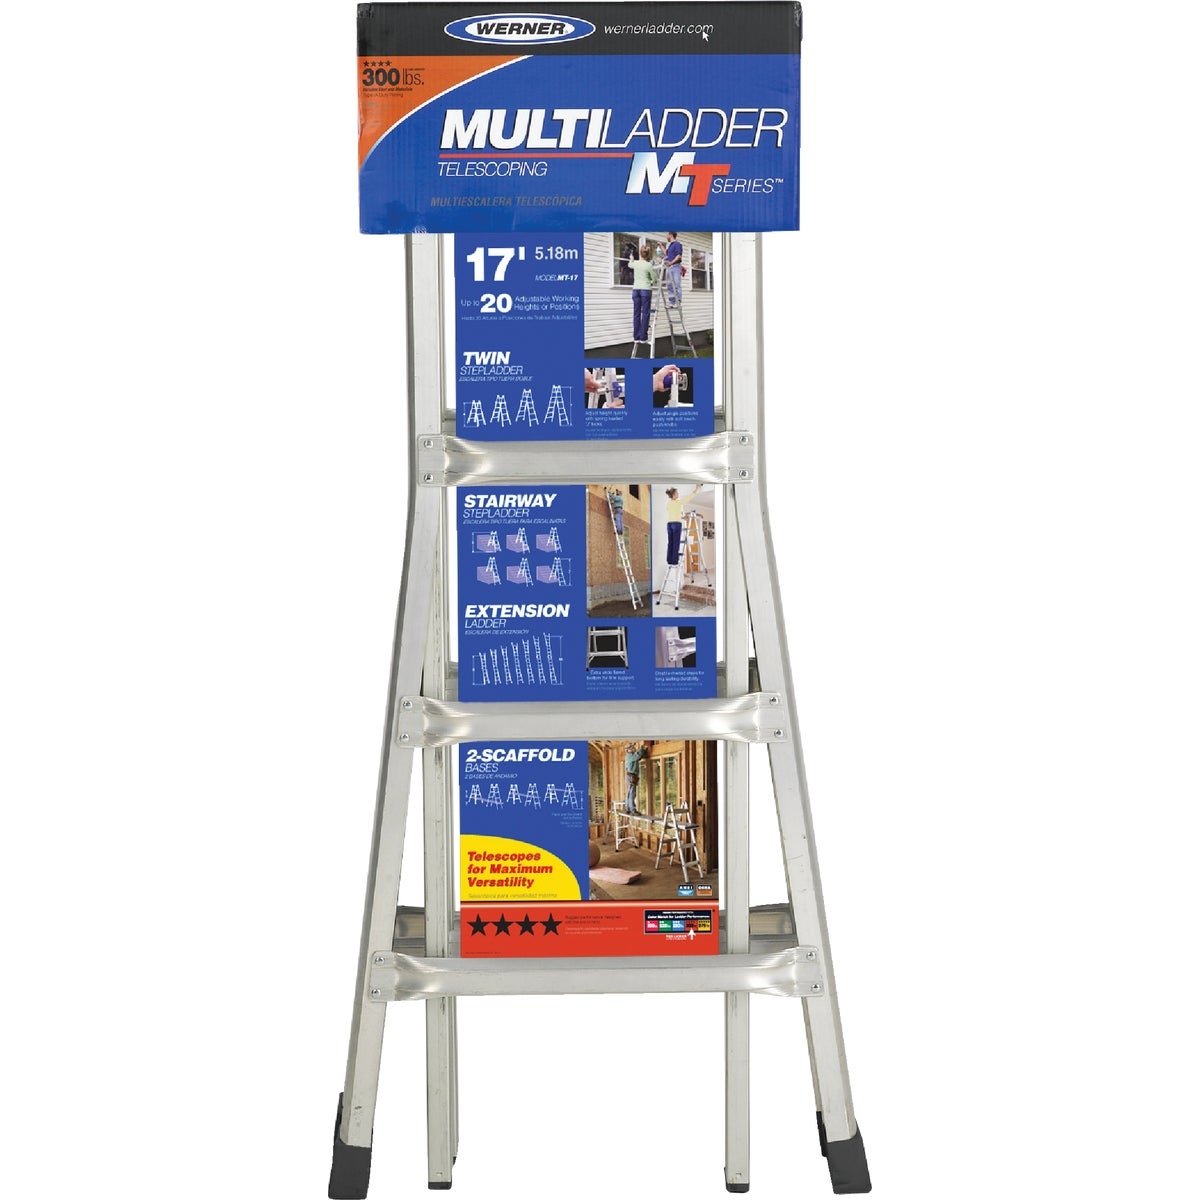 17' ALUM TELESCOP LADDER - MT-17 by Werner Ladder